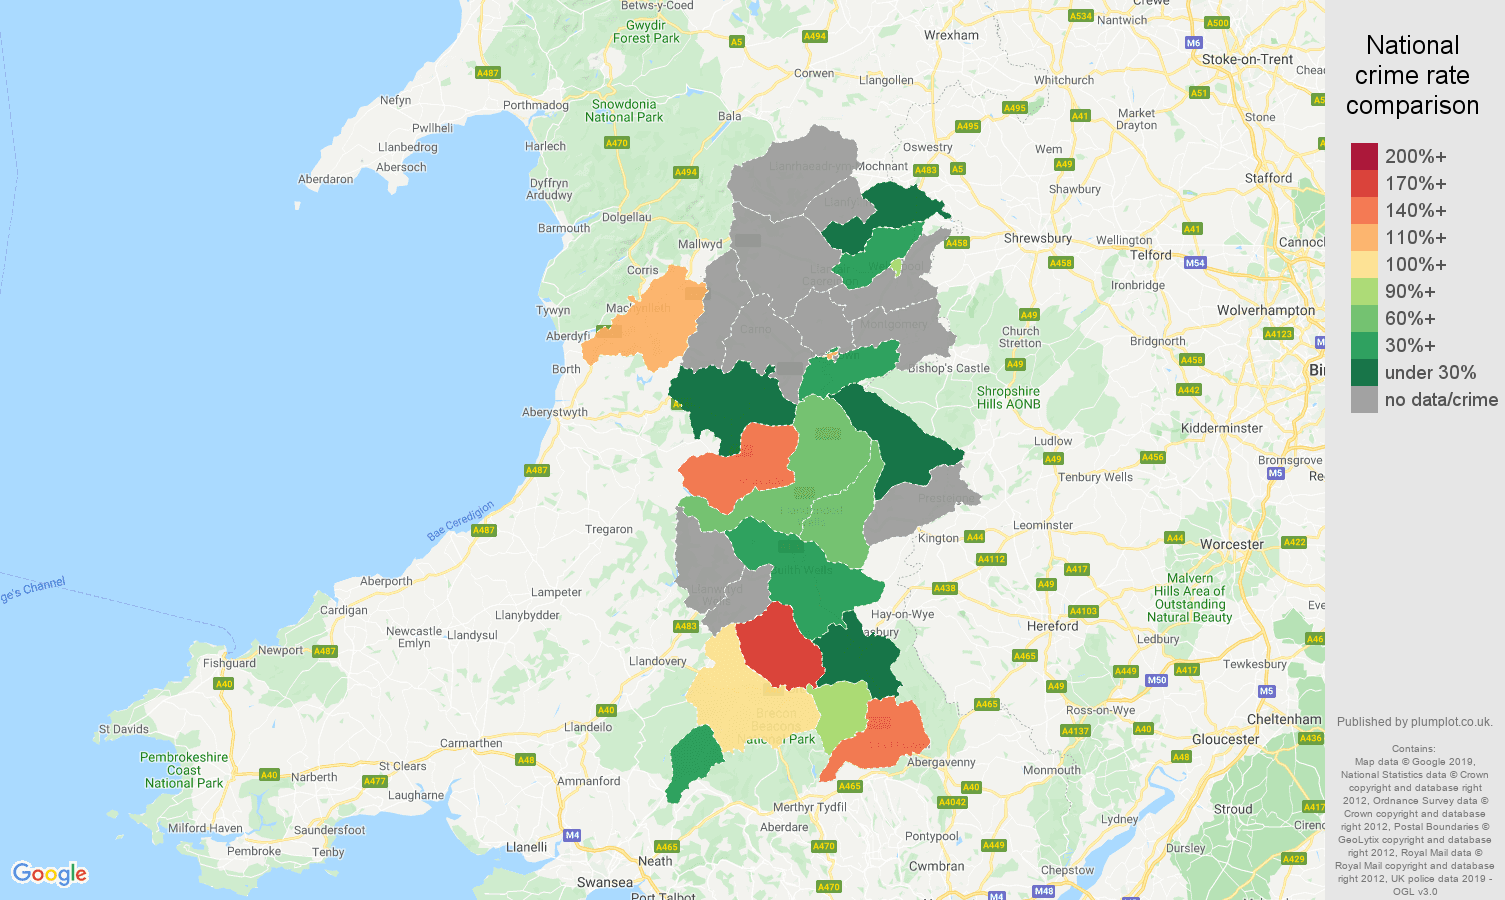 Powys possession of weapons crime rate comparison map